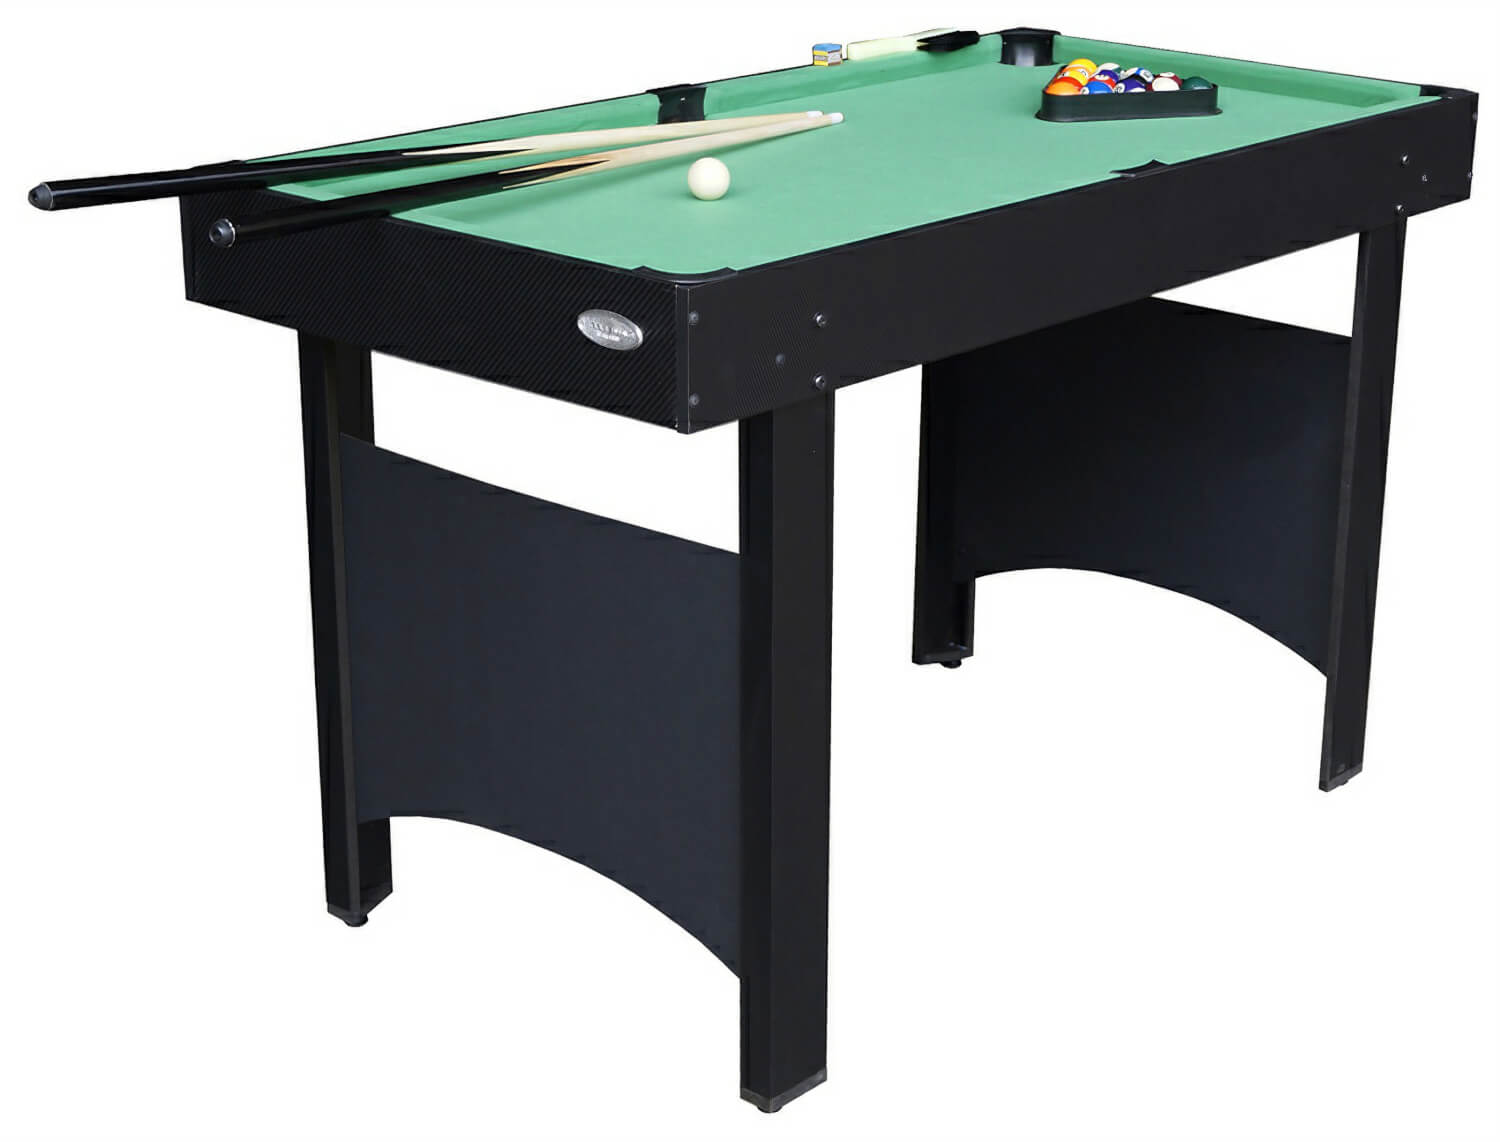 Gamesson UCLA II table | Free Delivery | Liberty Games